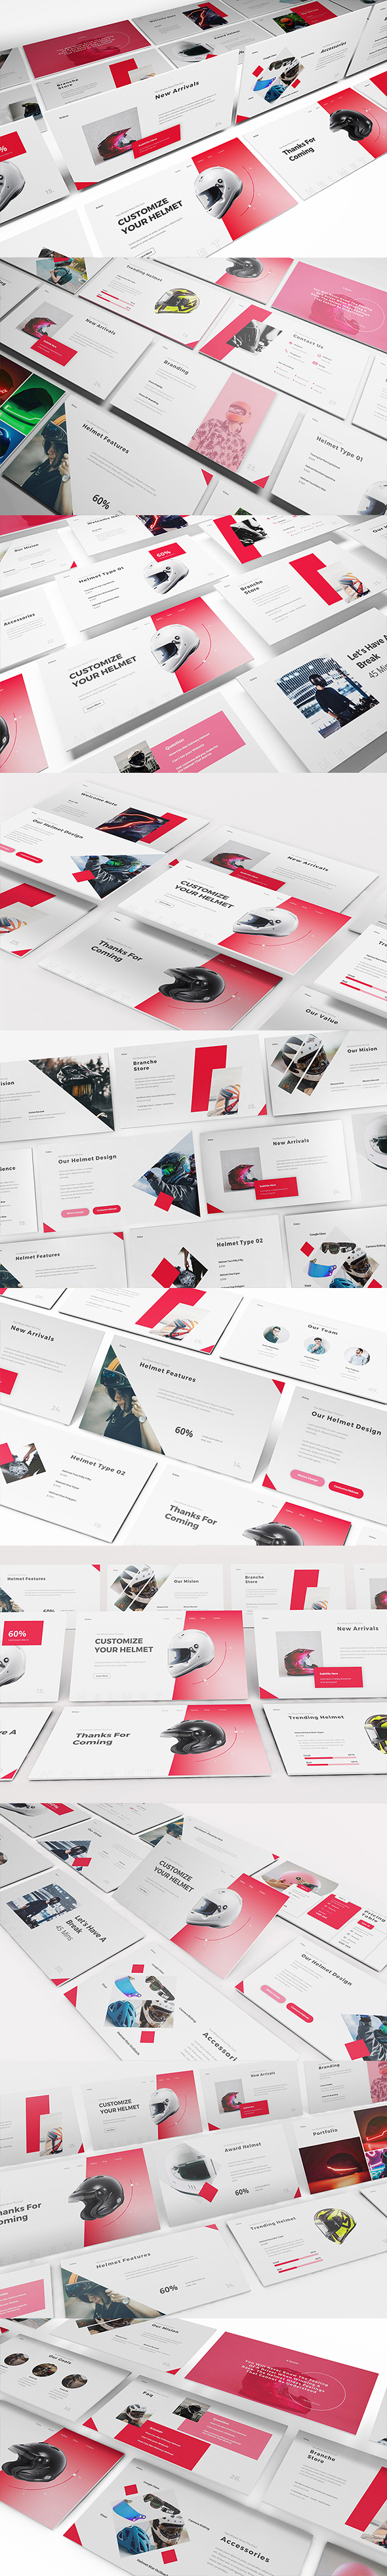 Helmet Shop Powerpoint Template